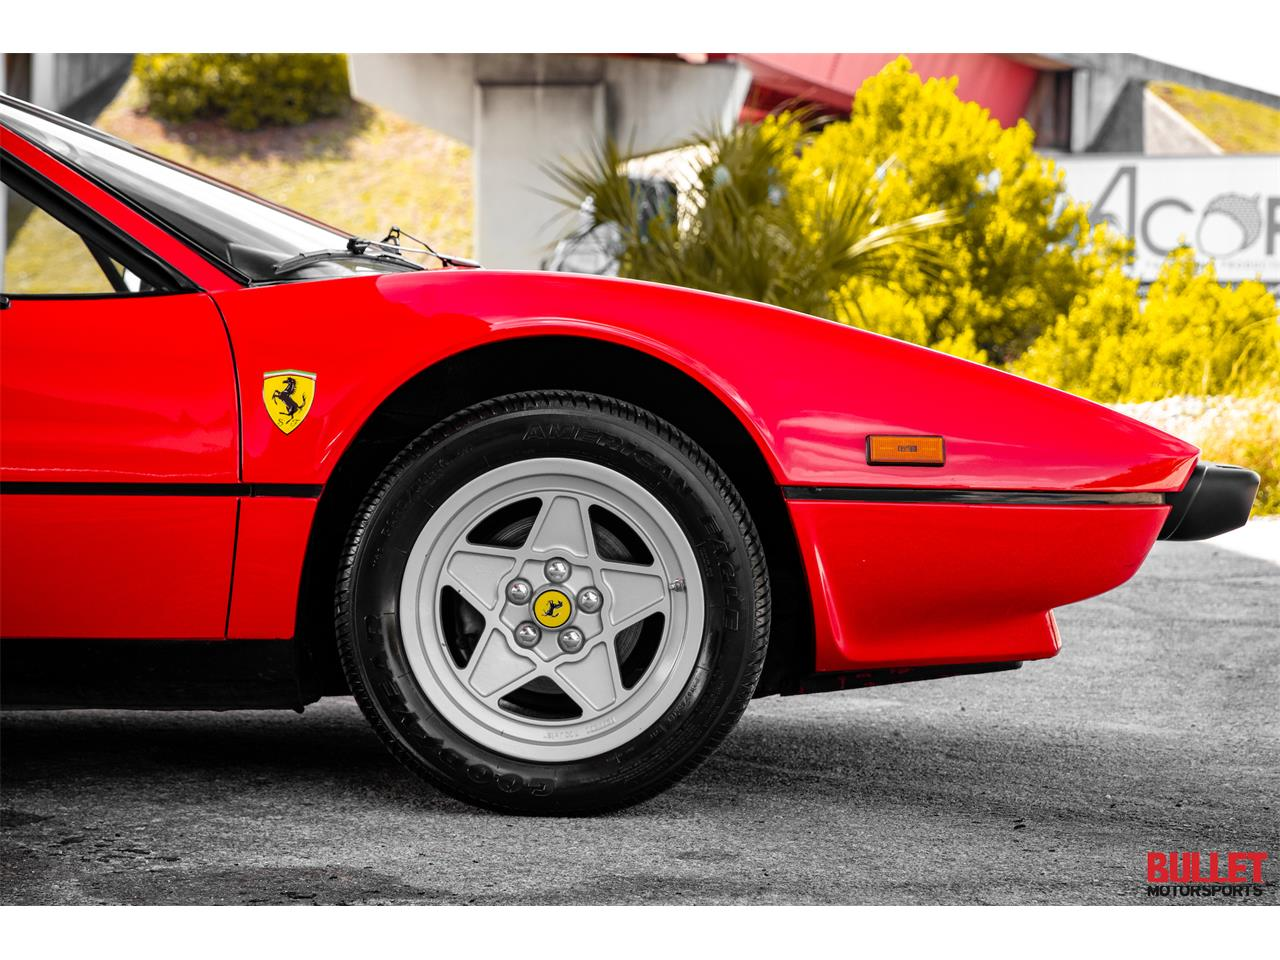 Large Picture of '85 Ferrari 308 GTS located in Fort Lauderdale Florida - PPFL